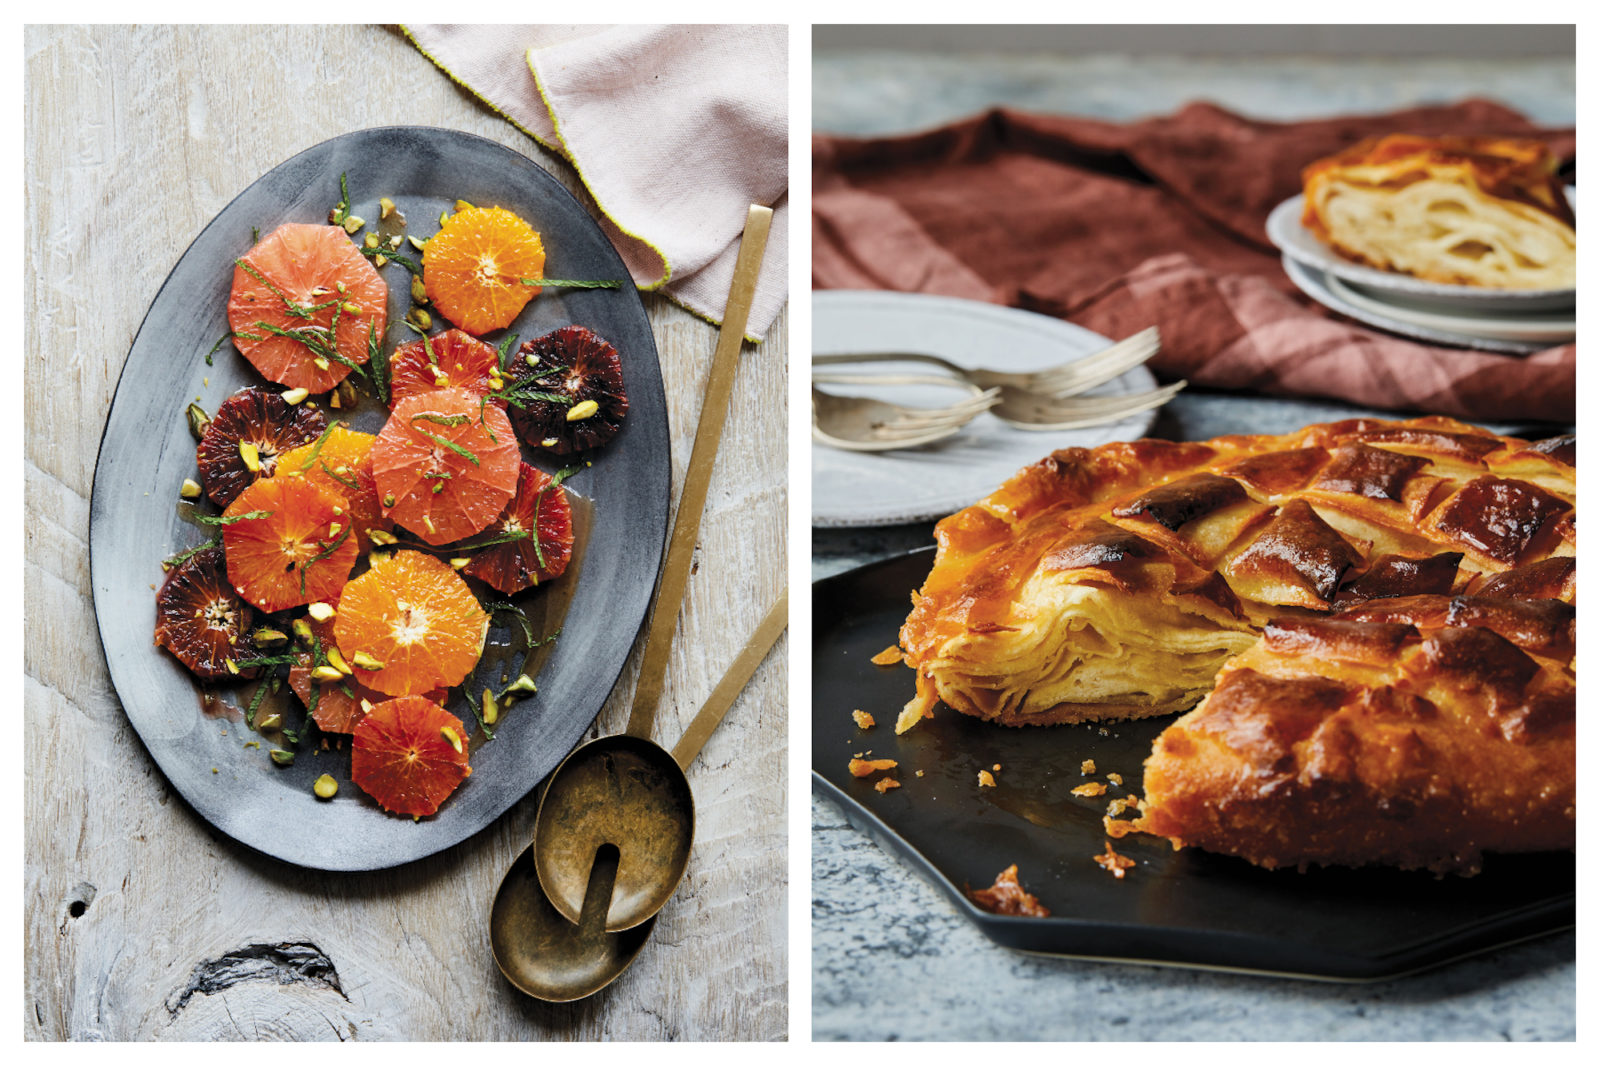 Some of the best French desserts like light and fluffy Kouign Amann pastry (right) and tangy citrus salad from Clotilde Dusoulier in her cookbook 'Tasting Paris' book.